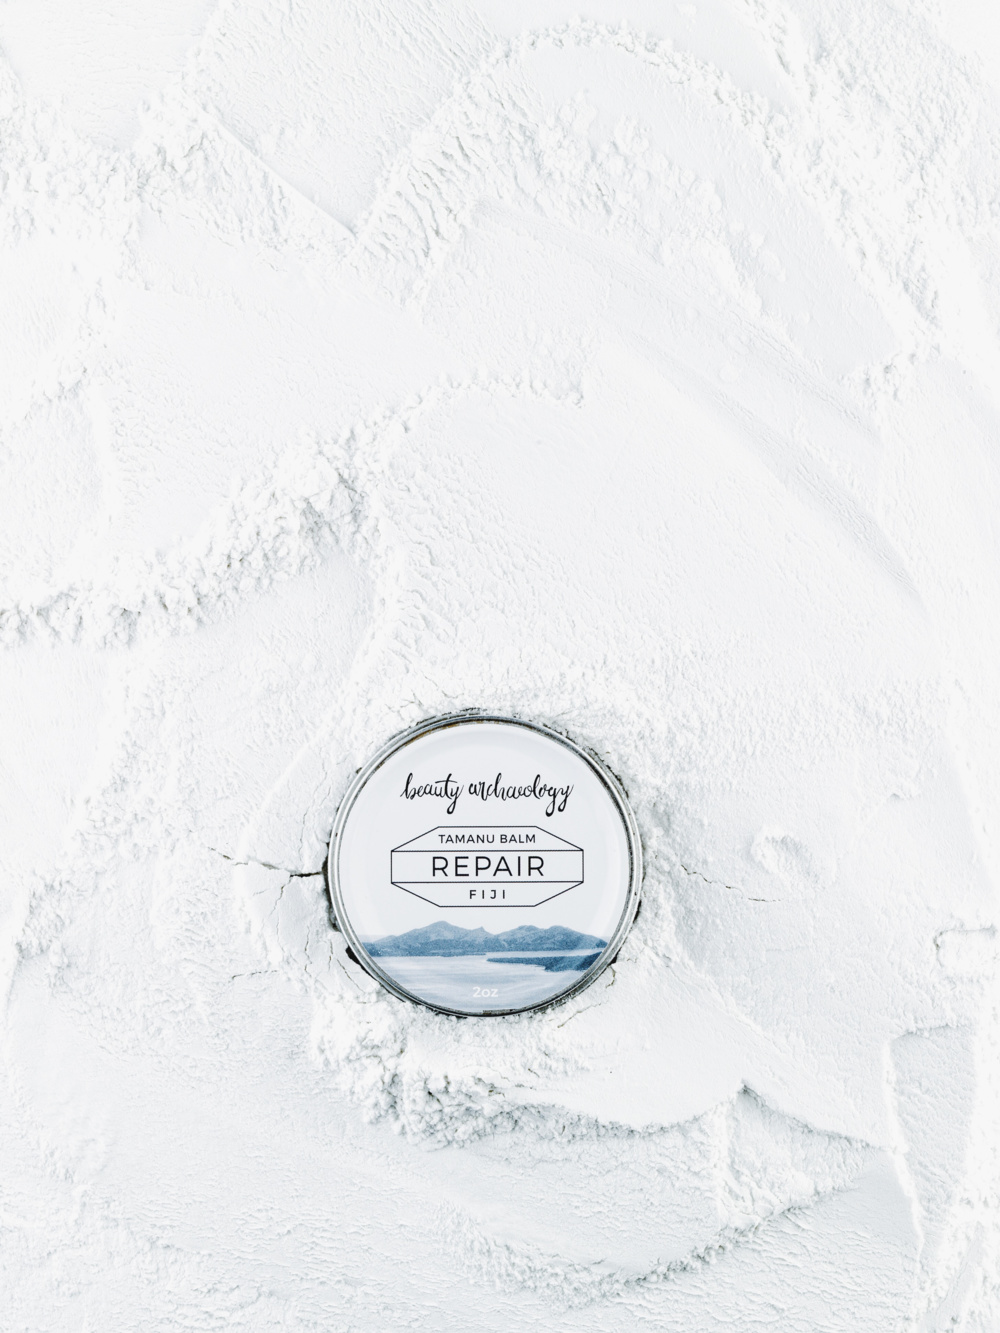 Beauty Archaeology Winter Campaign2.jpg